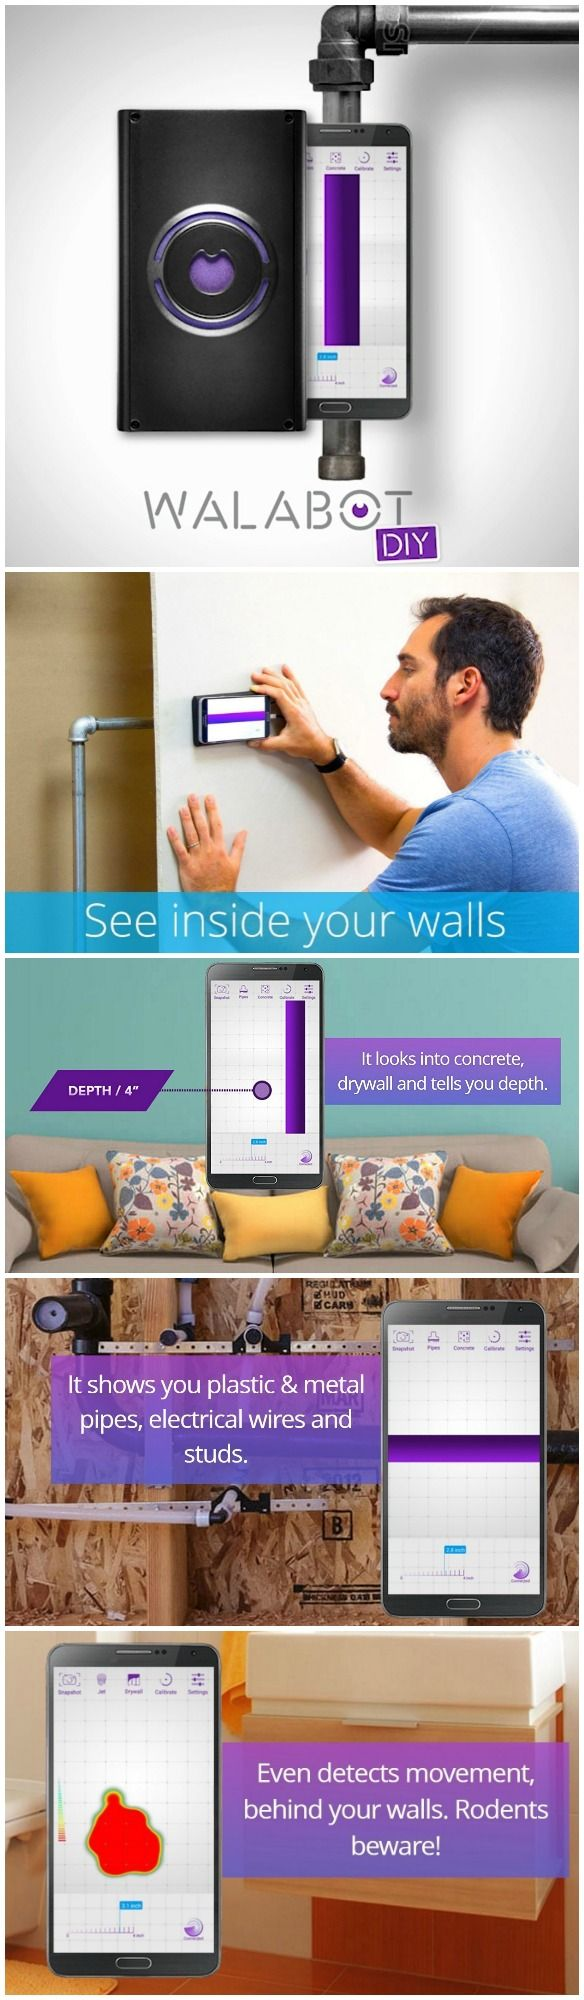 Want to hammer, drill or cut into a wall without the fear of accidentally bursting a water pipe, or slicing an electrical wire? WalabotDIY lets you look inside yours walls and take the guesswork out of your next renovation project. #affiliate